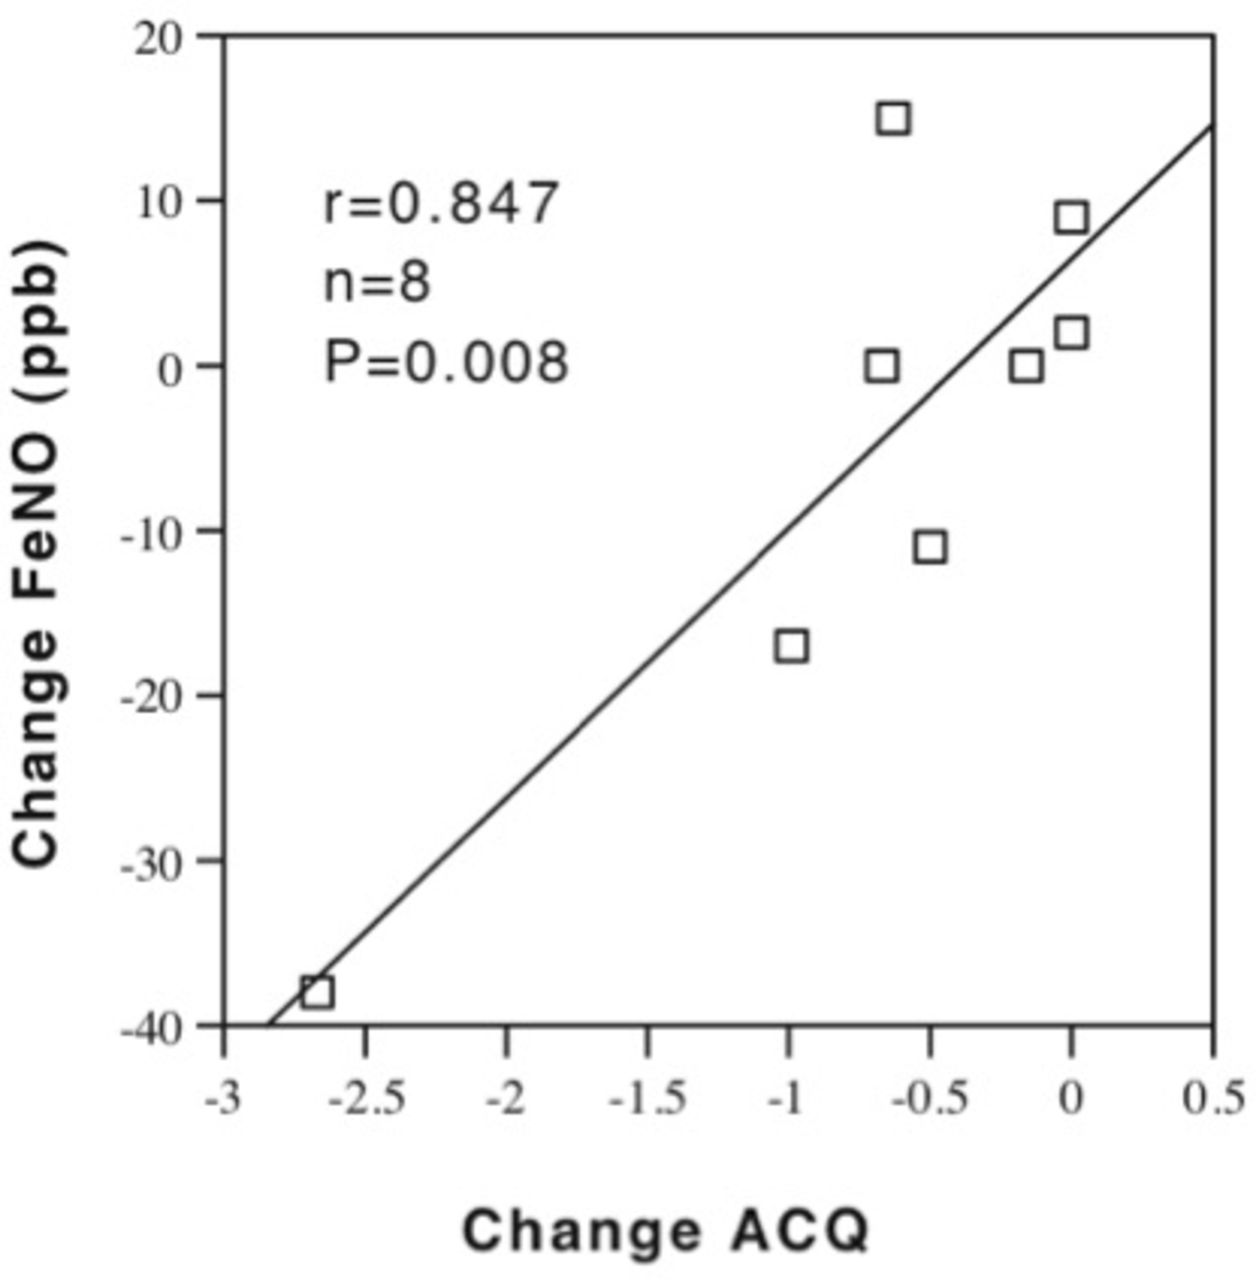 Non-adherence to inhaled corticosteroid therapy as an